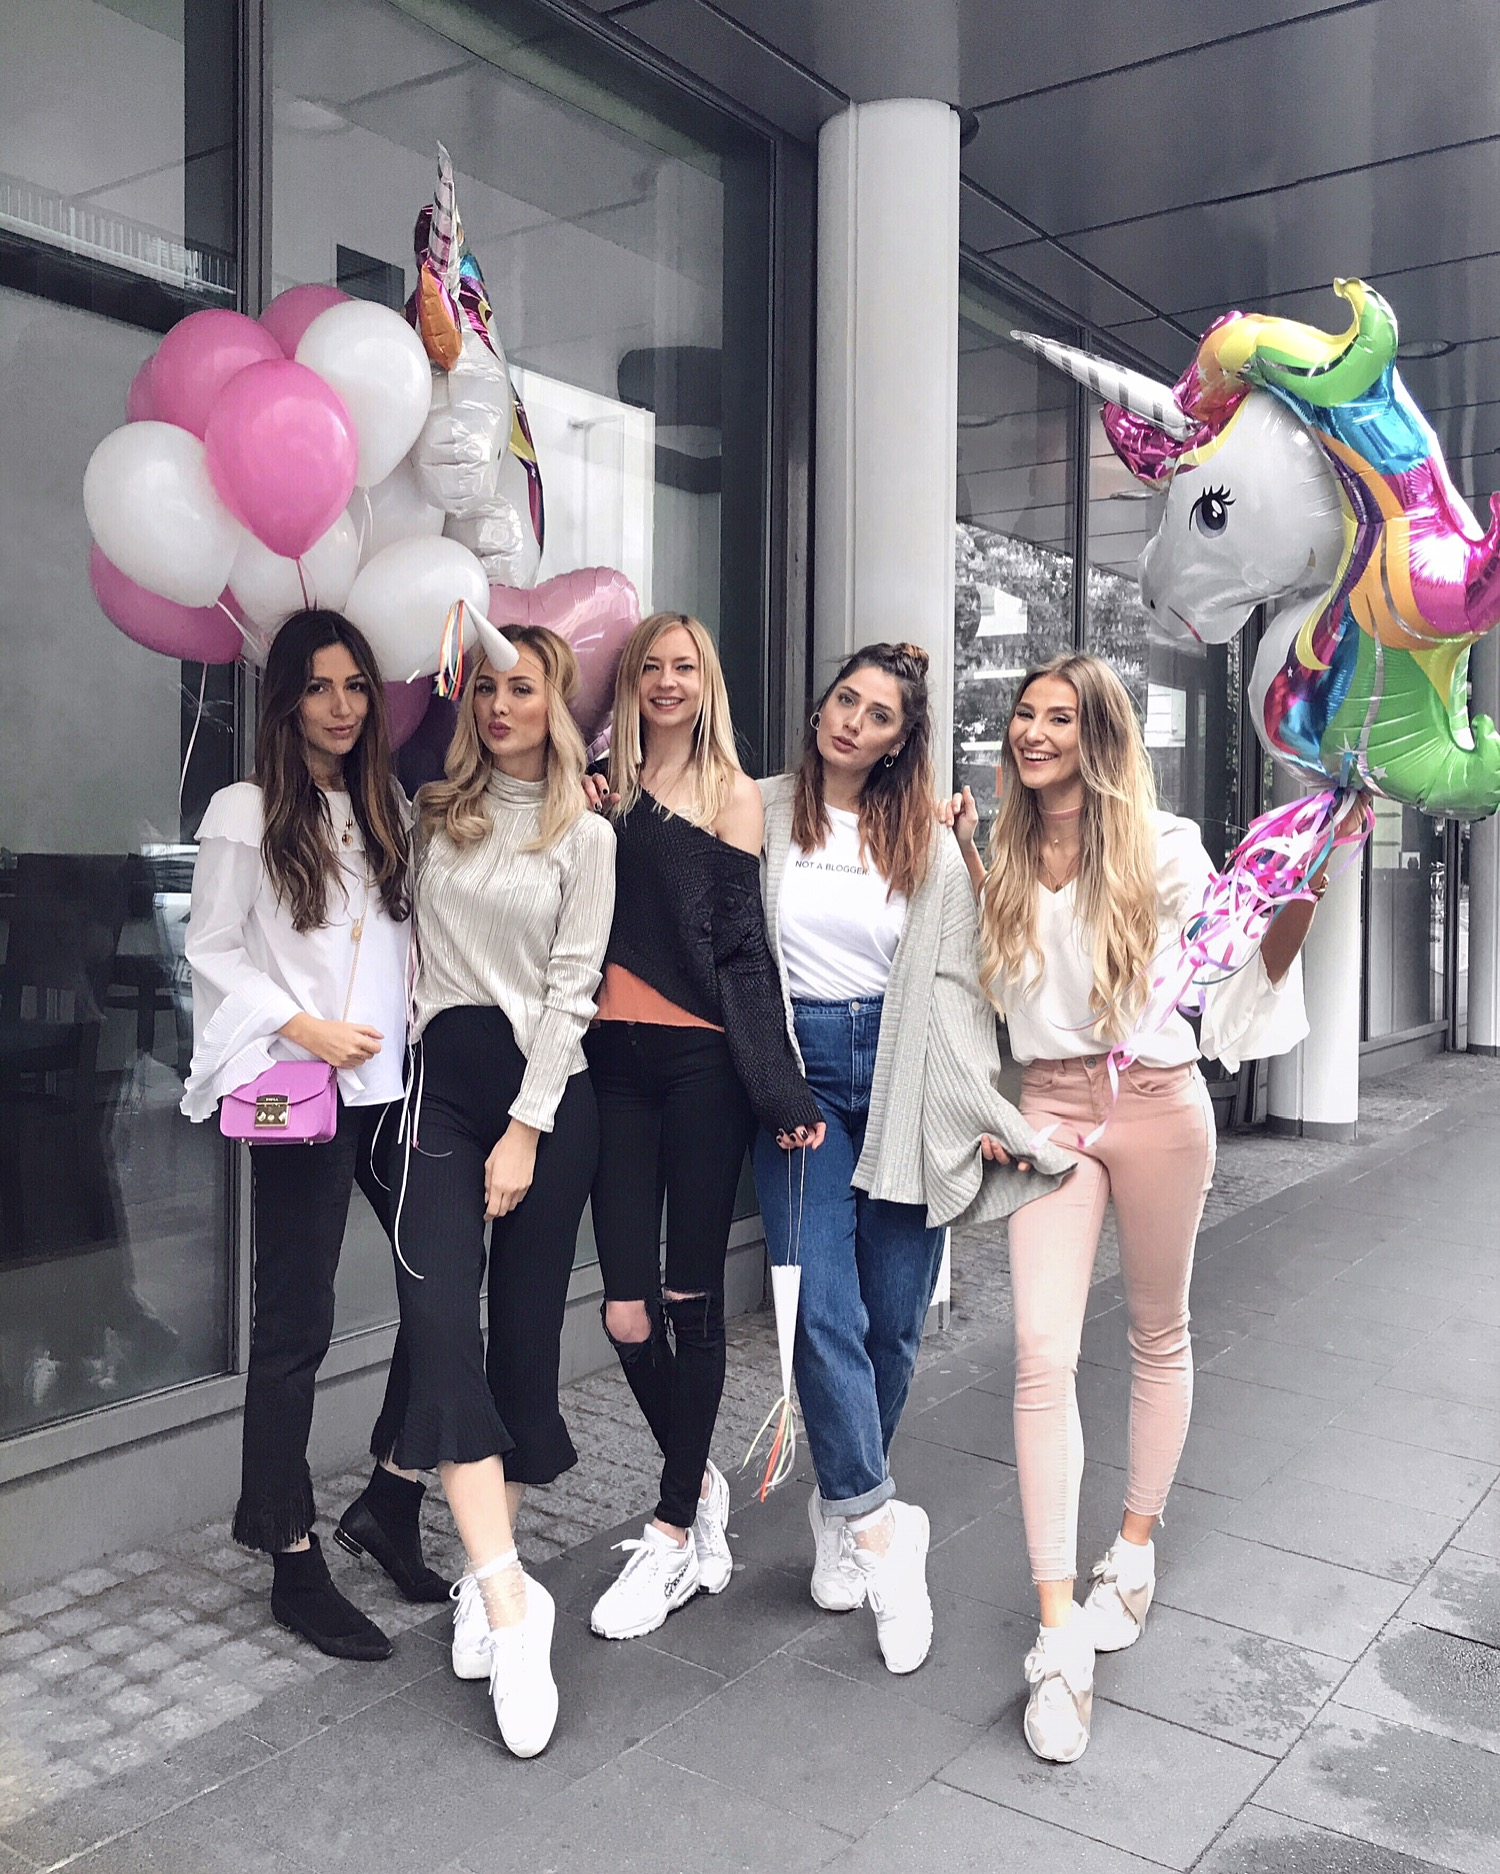 Unicorns. Update Week 15 | 2017 | How I met my outfit by Dana Lohmüller